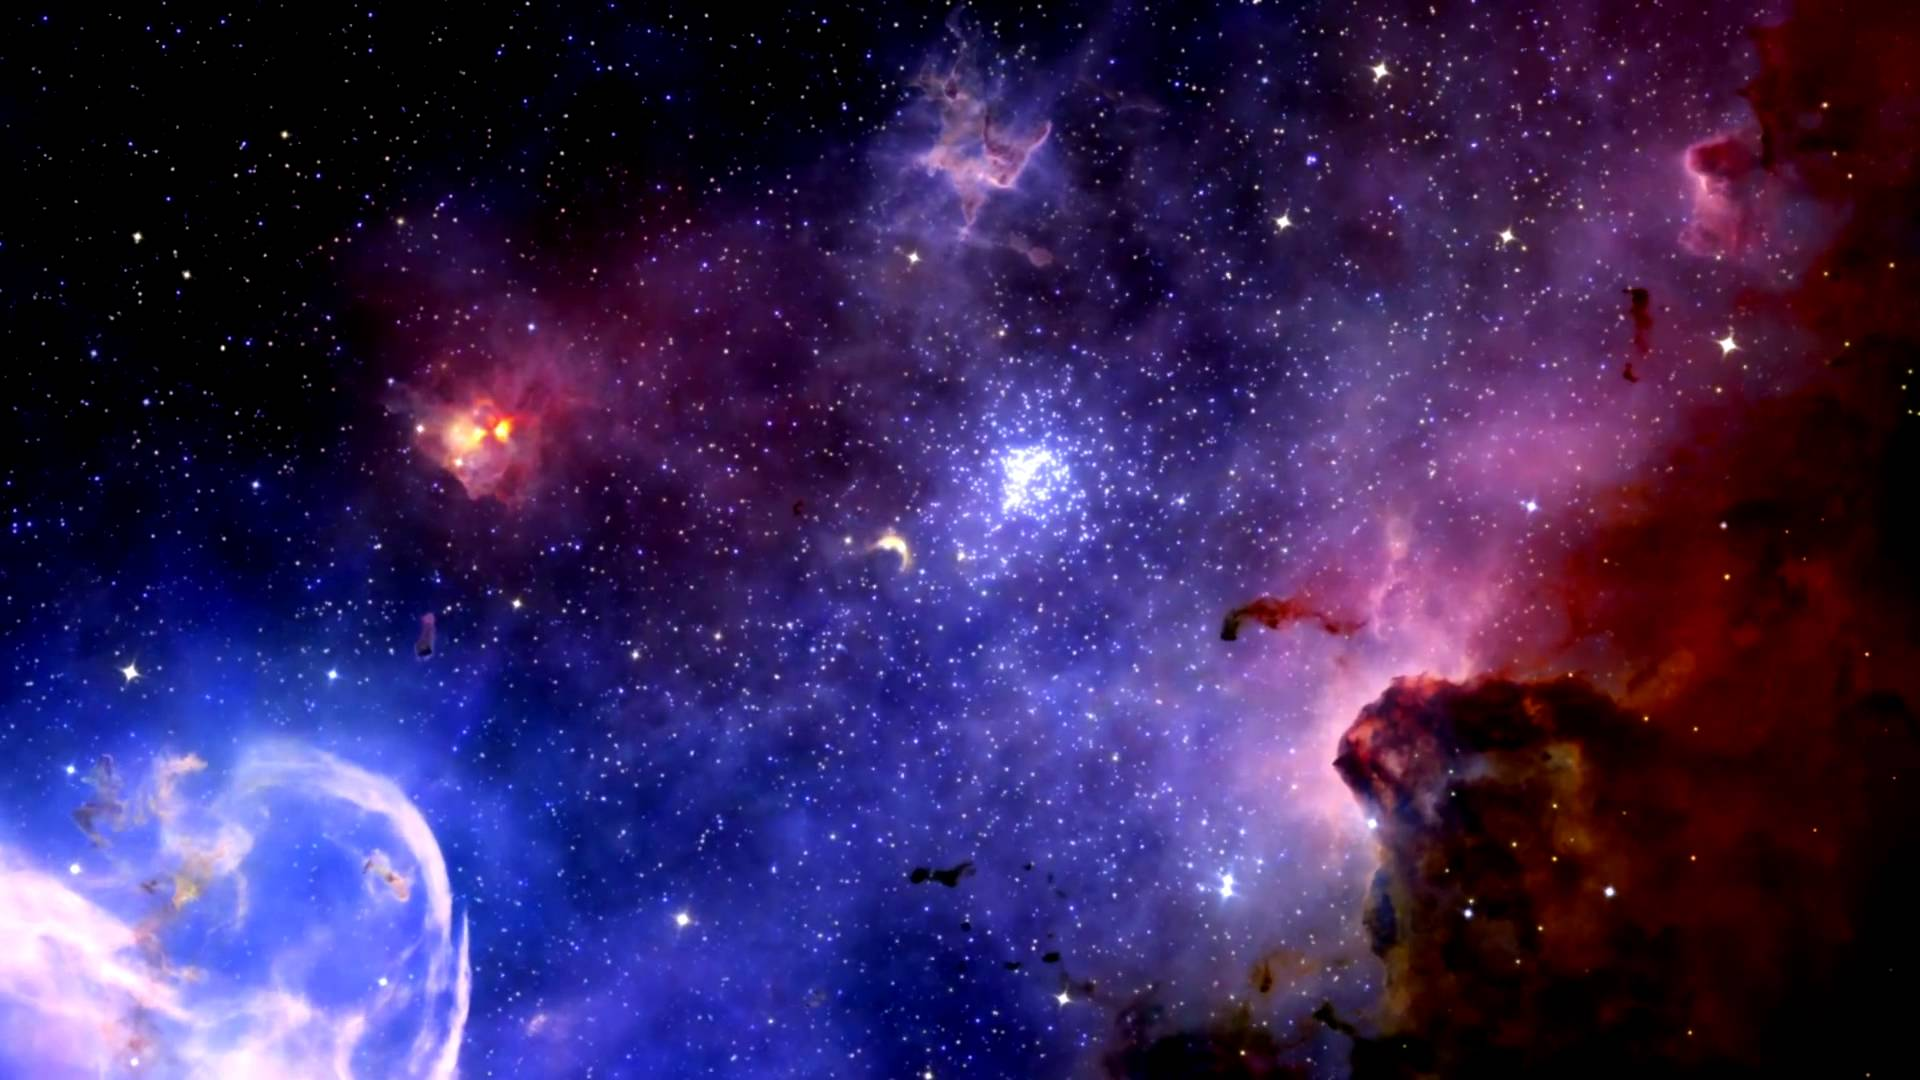 3D Universe Wallpaper - WallpaperSafari